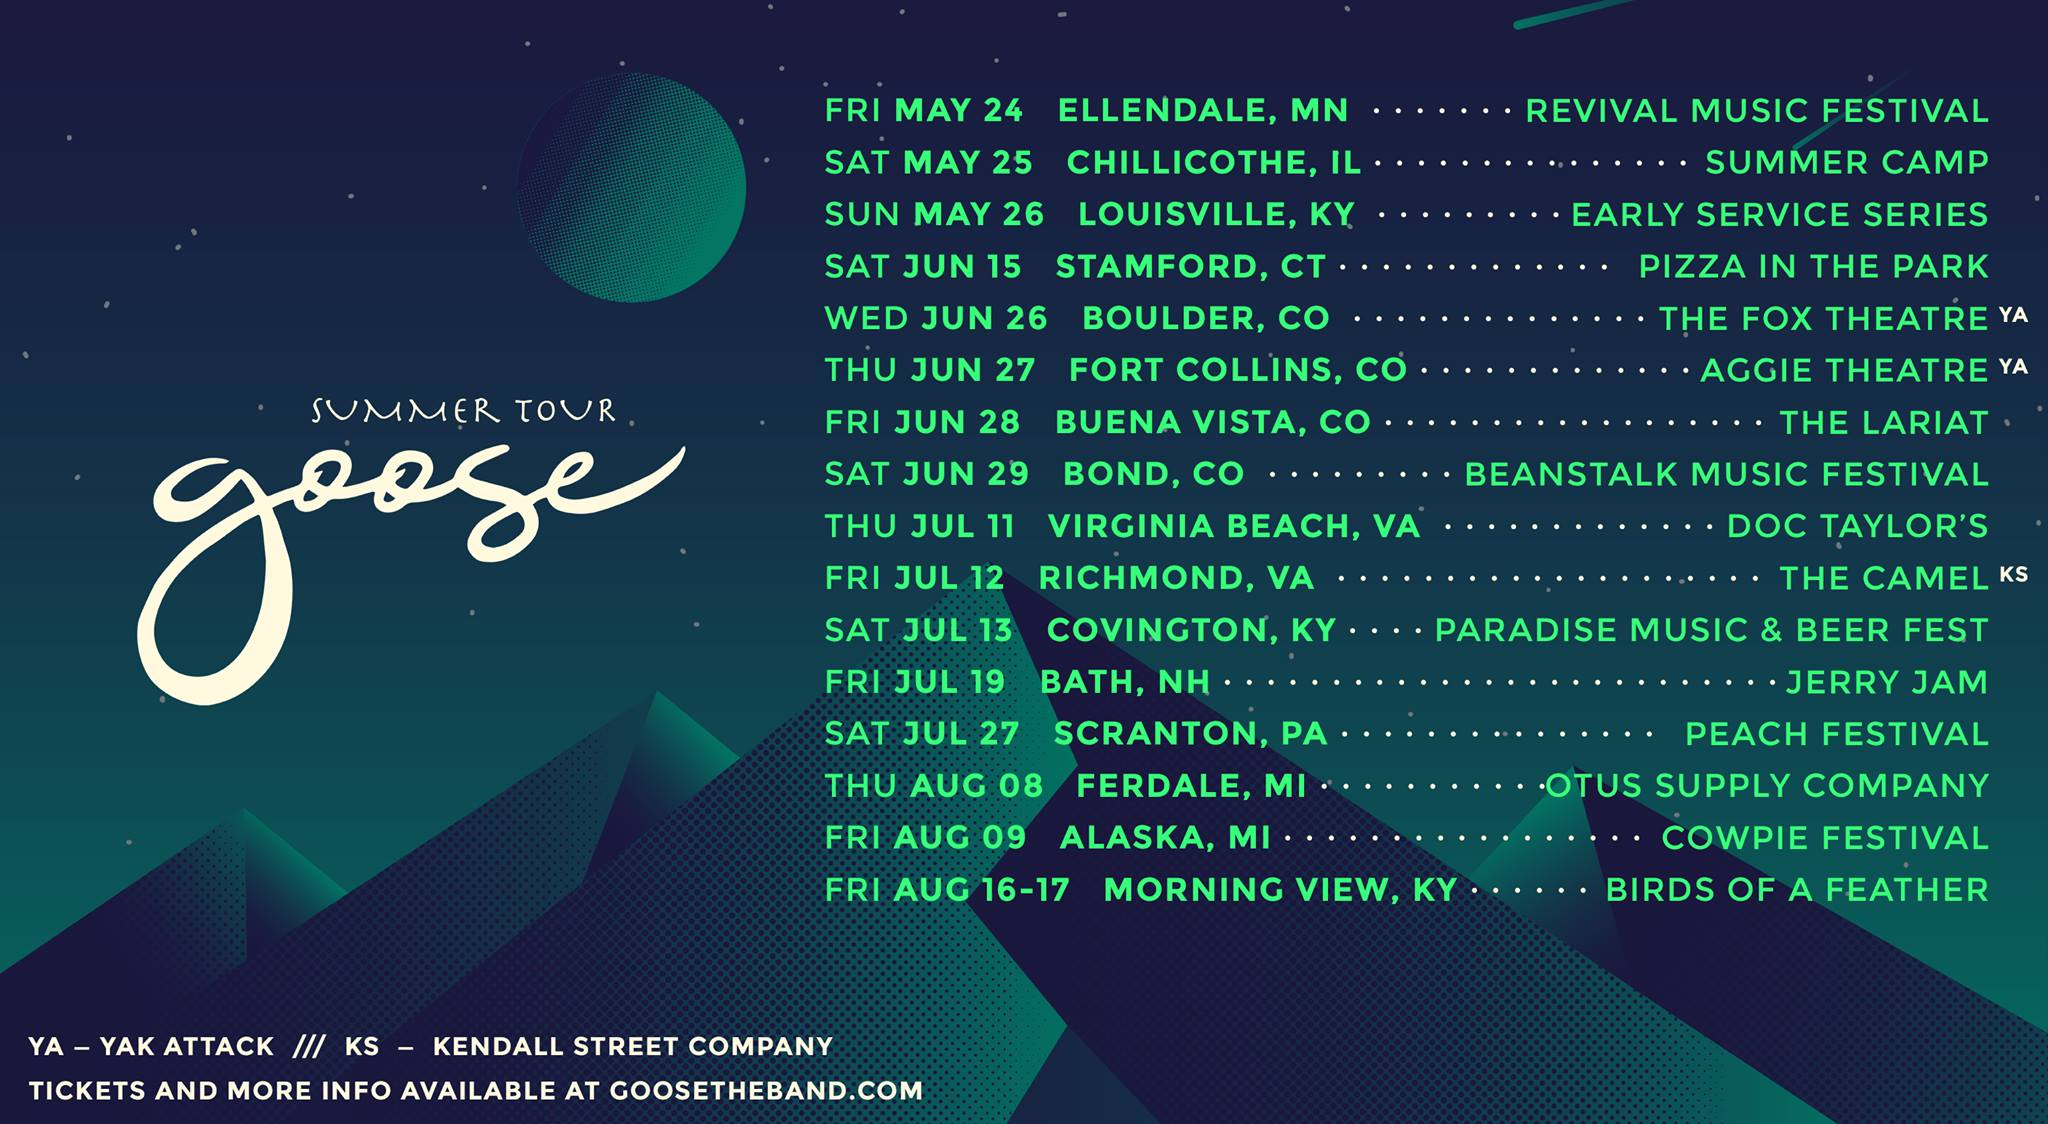 GOOSE Announces Summer Tour Dates and New Show Release